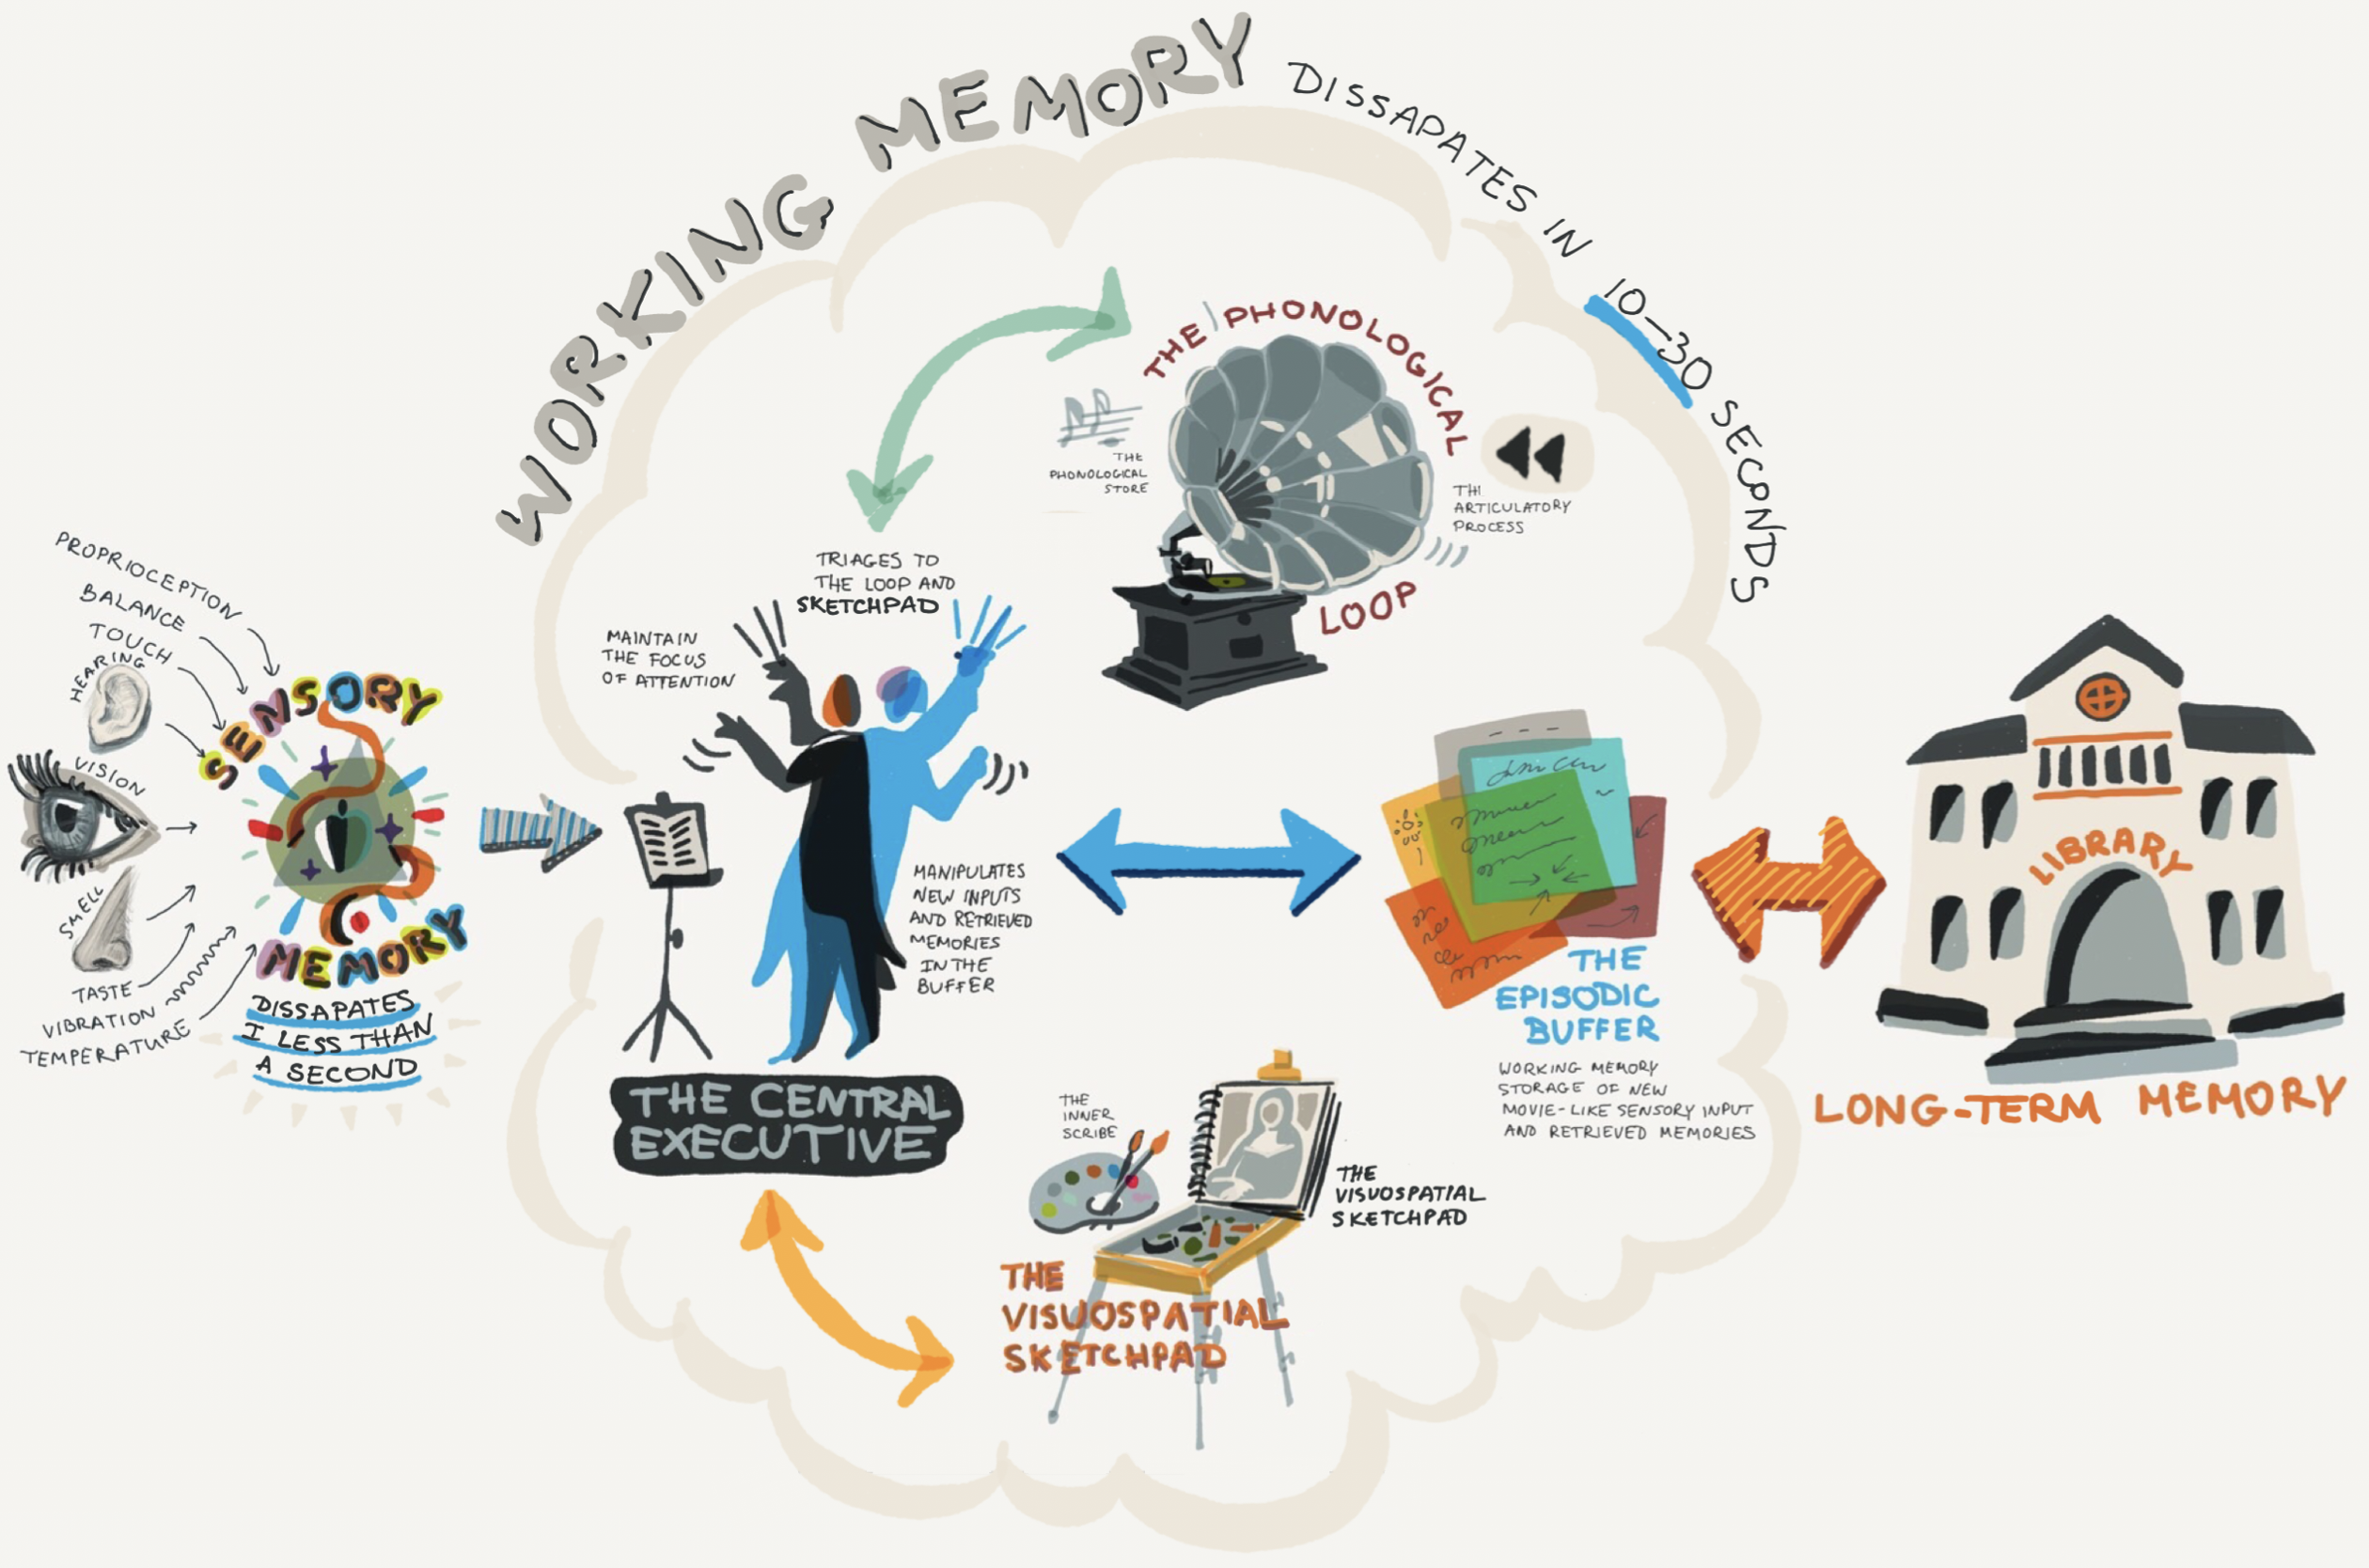 Illustration of The Working Memory Model and how it fits within how memory works.